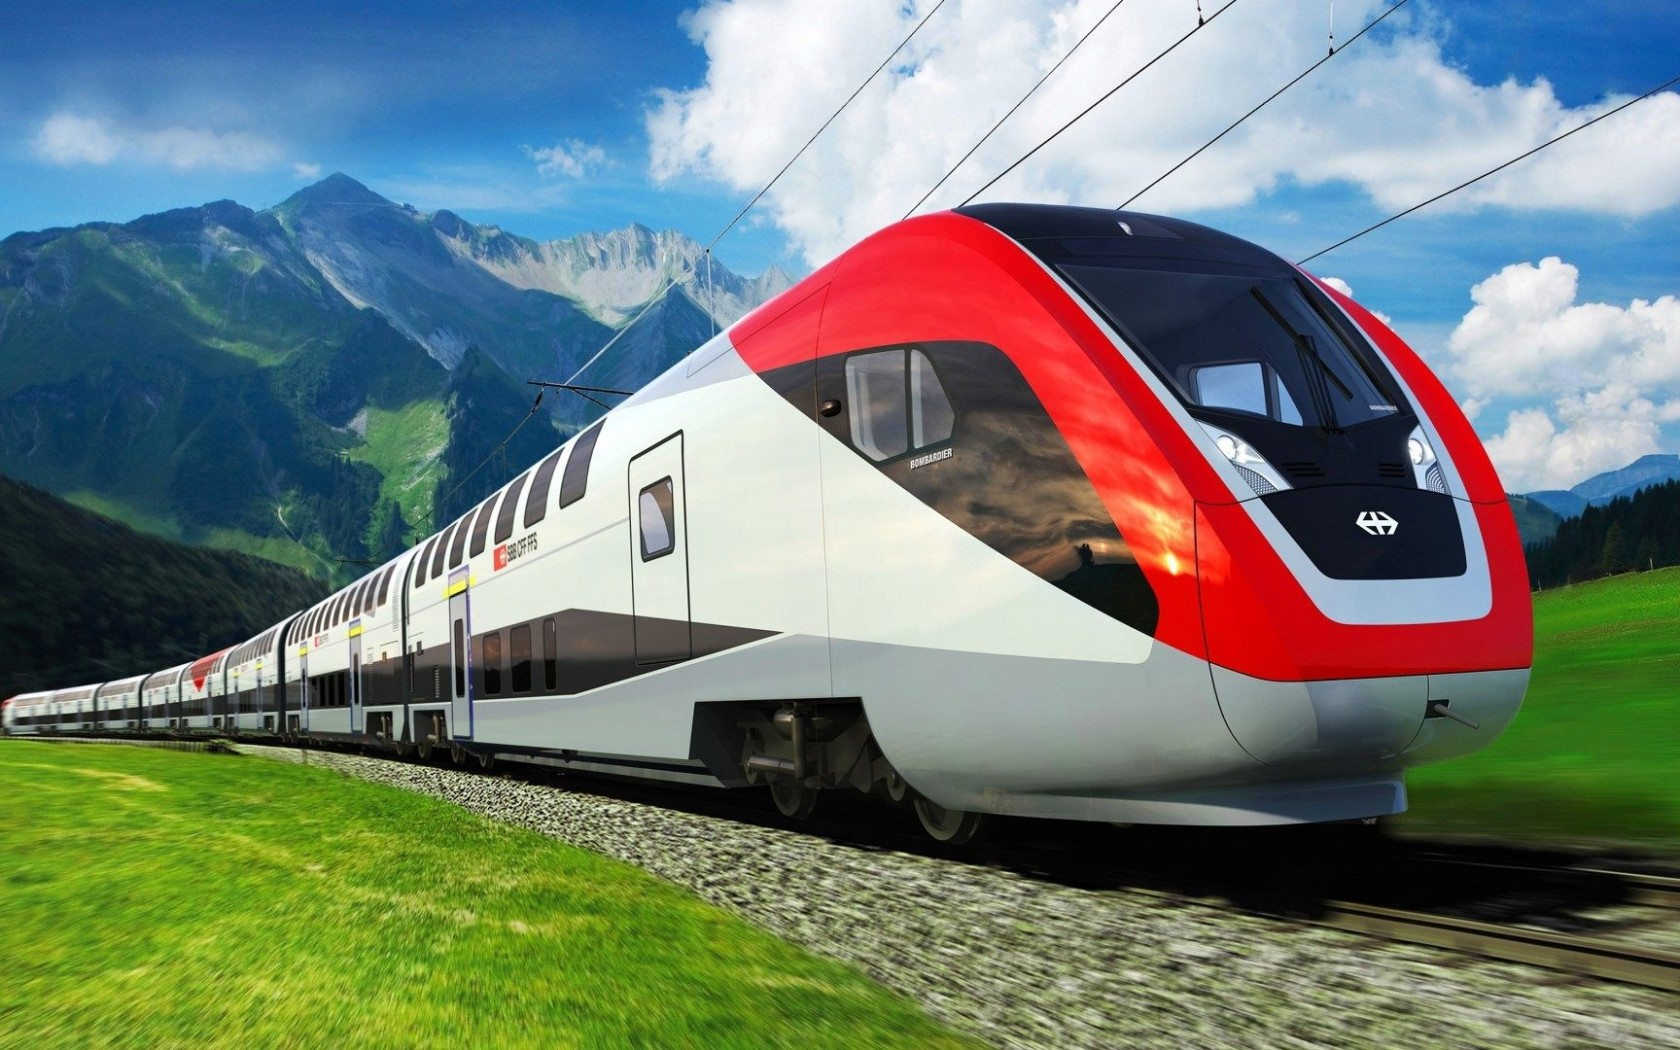 TRAVEL EUROPE WITH EURO RAIL